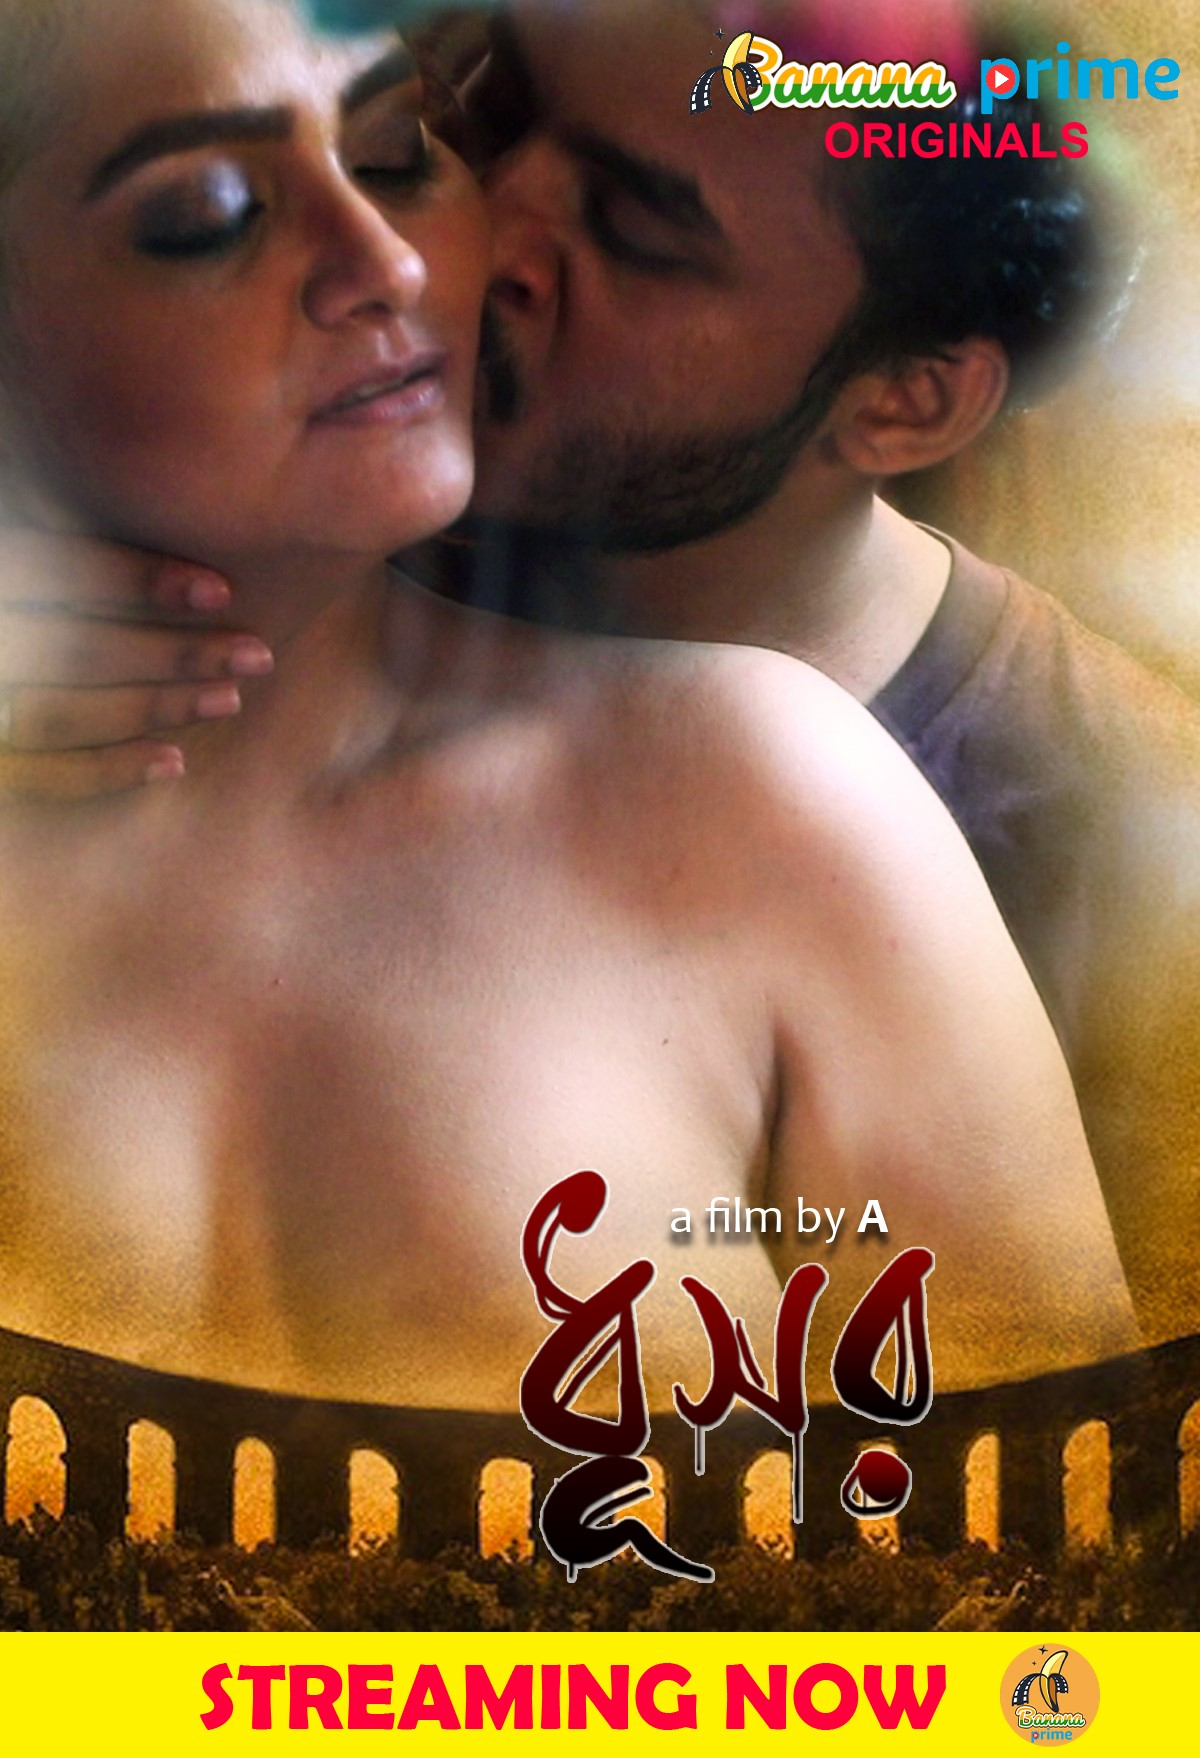 18+ Dhusor (2021) BananaPrime Originals Bengali Short Film 720p UNRATED HDRip 200MB x264 AAC